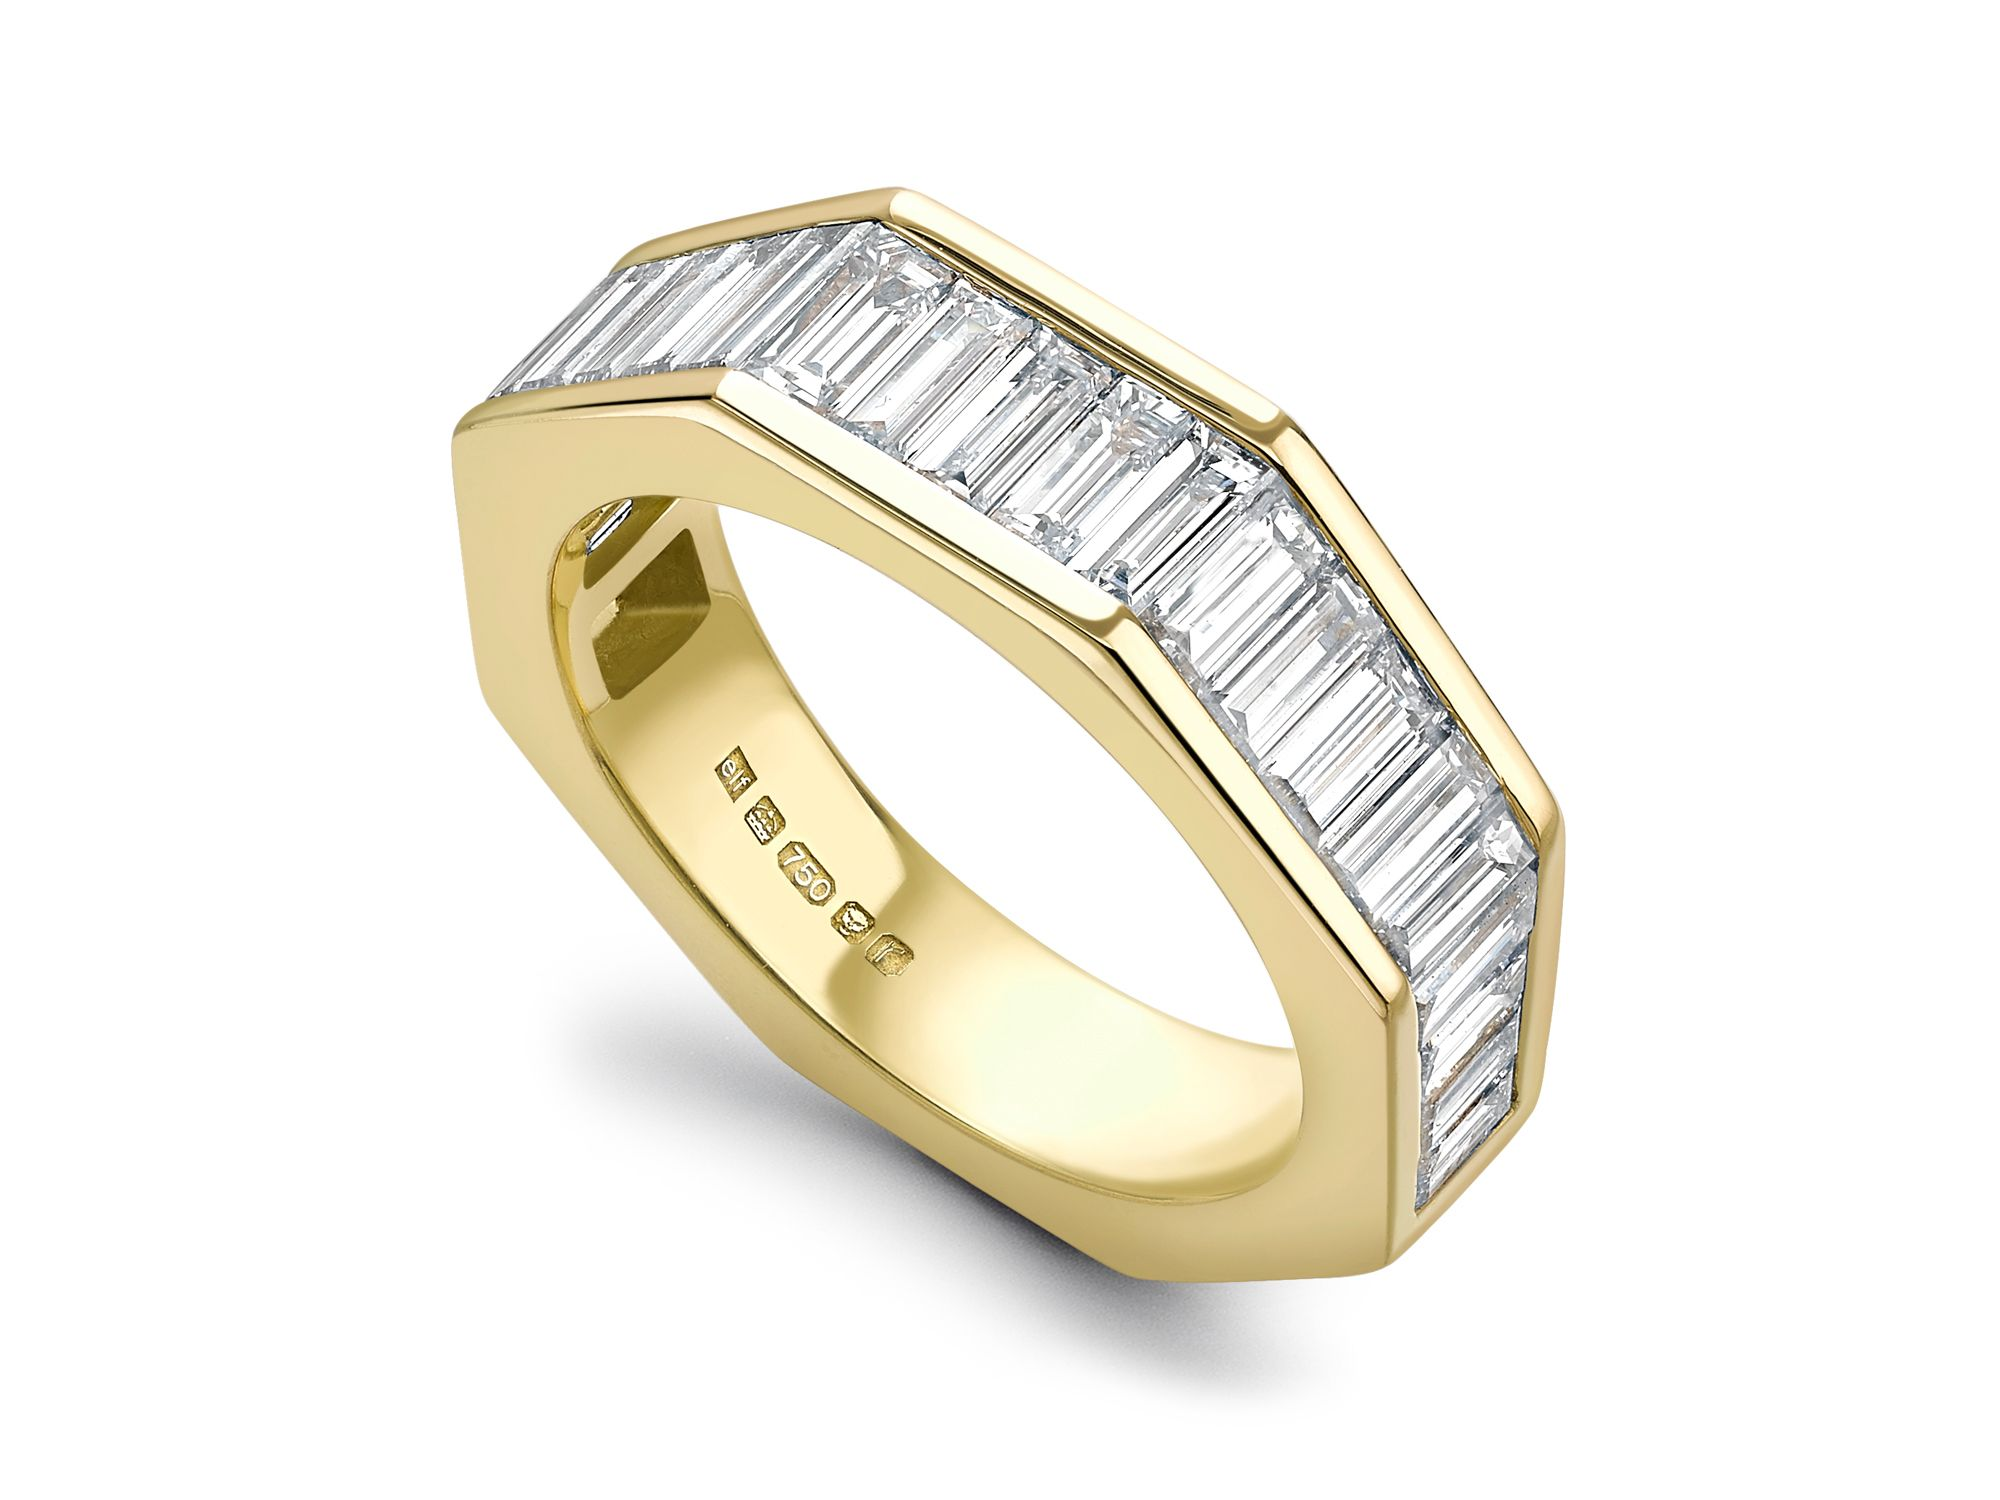 PARIS CRISP YELLOW GOLD OCTAGON ETERNITY BAND WITH 5 TAPERED CHANNELS OF BAGUETTE